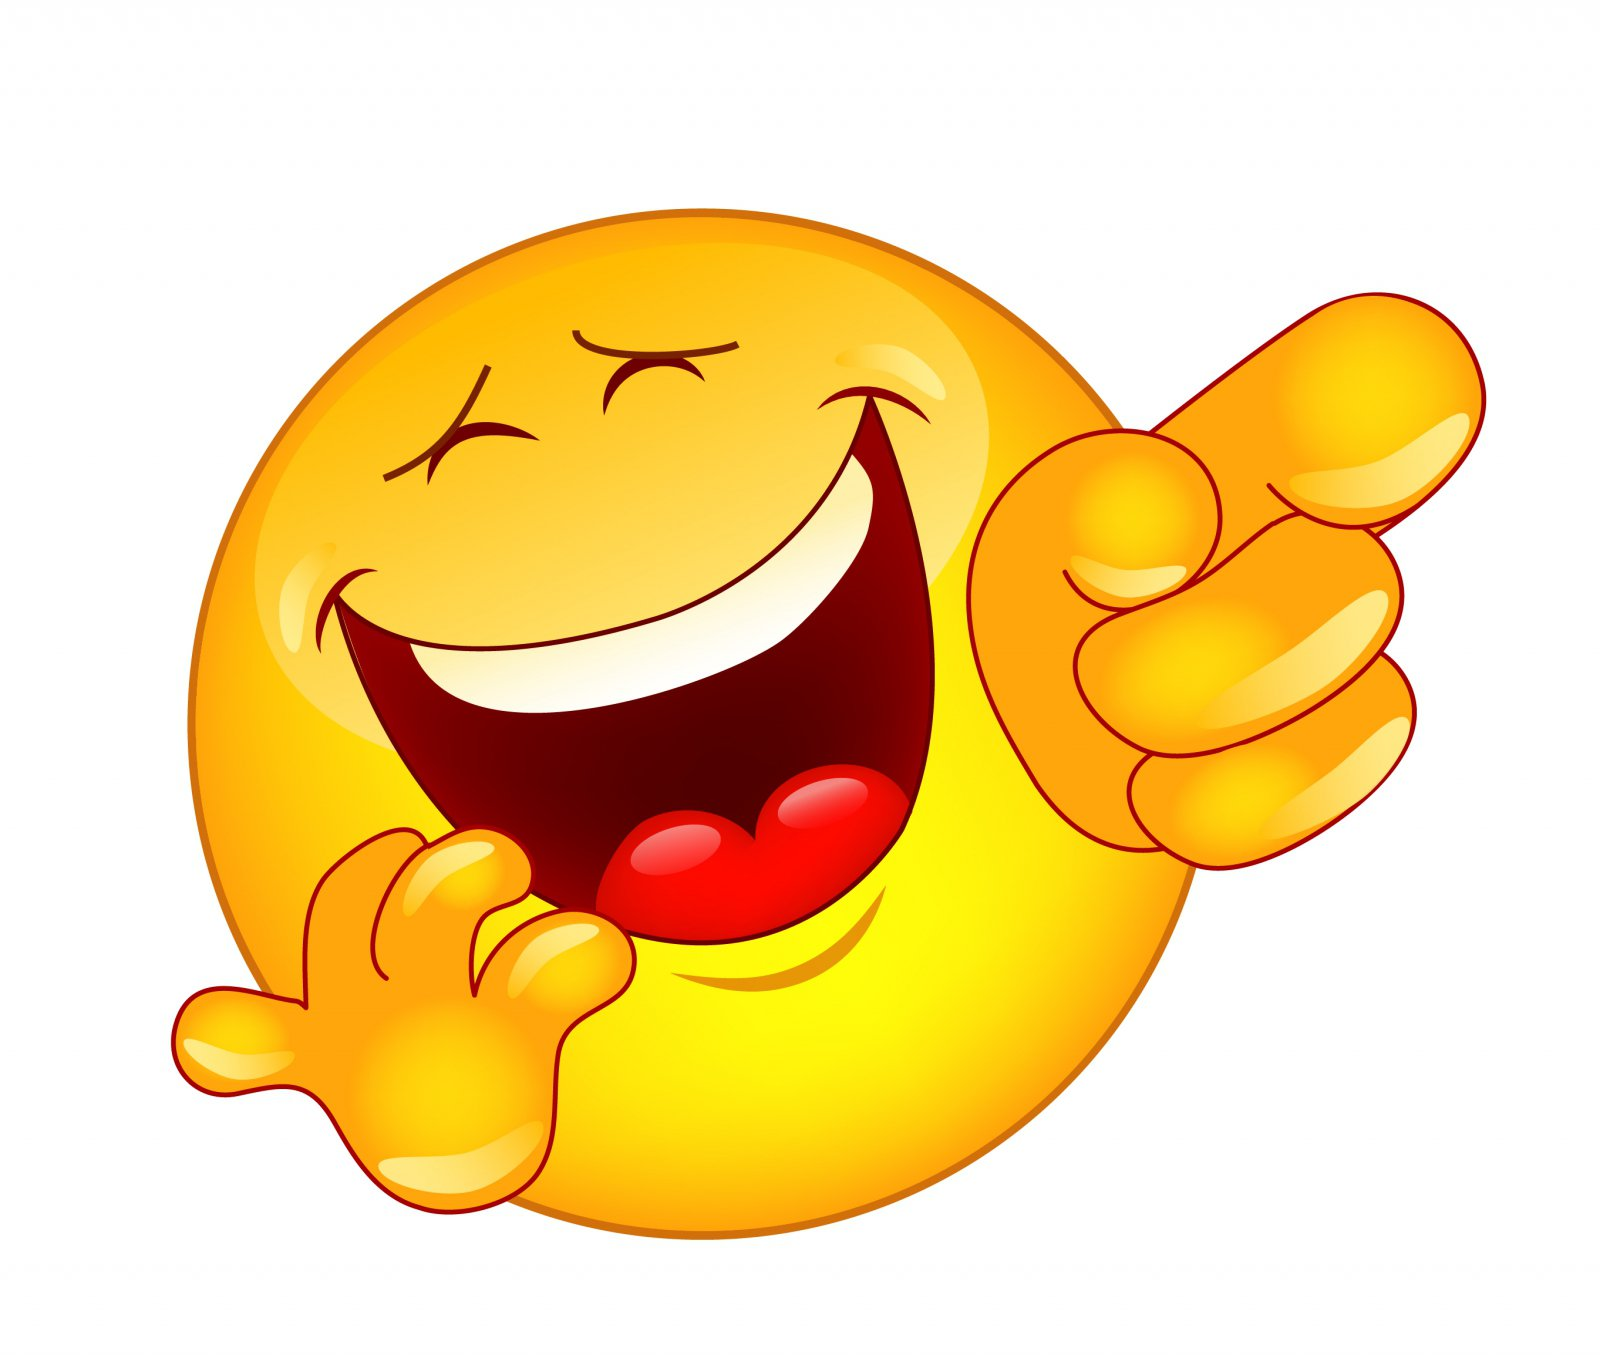 Smileys clipart laugh Laughing Laughing Clip Emoticons Laughing